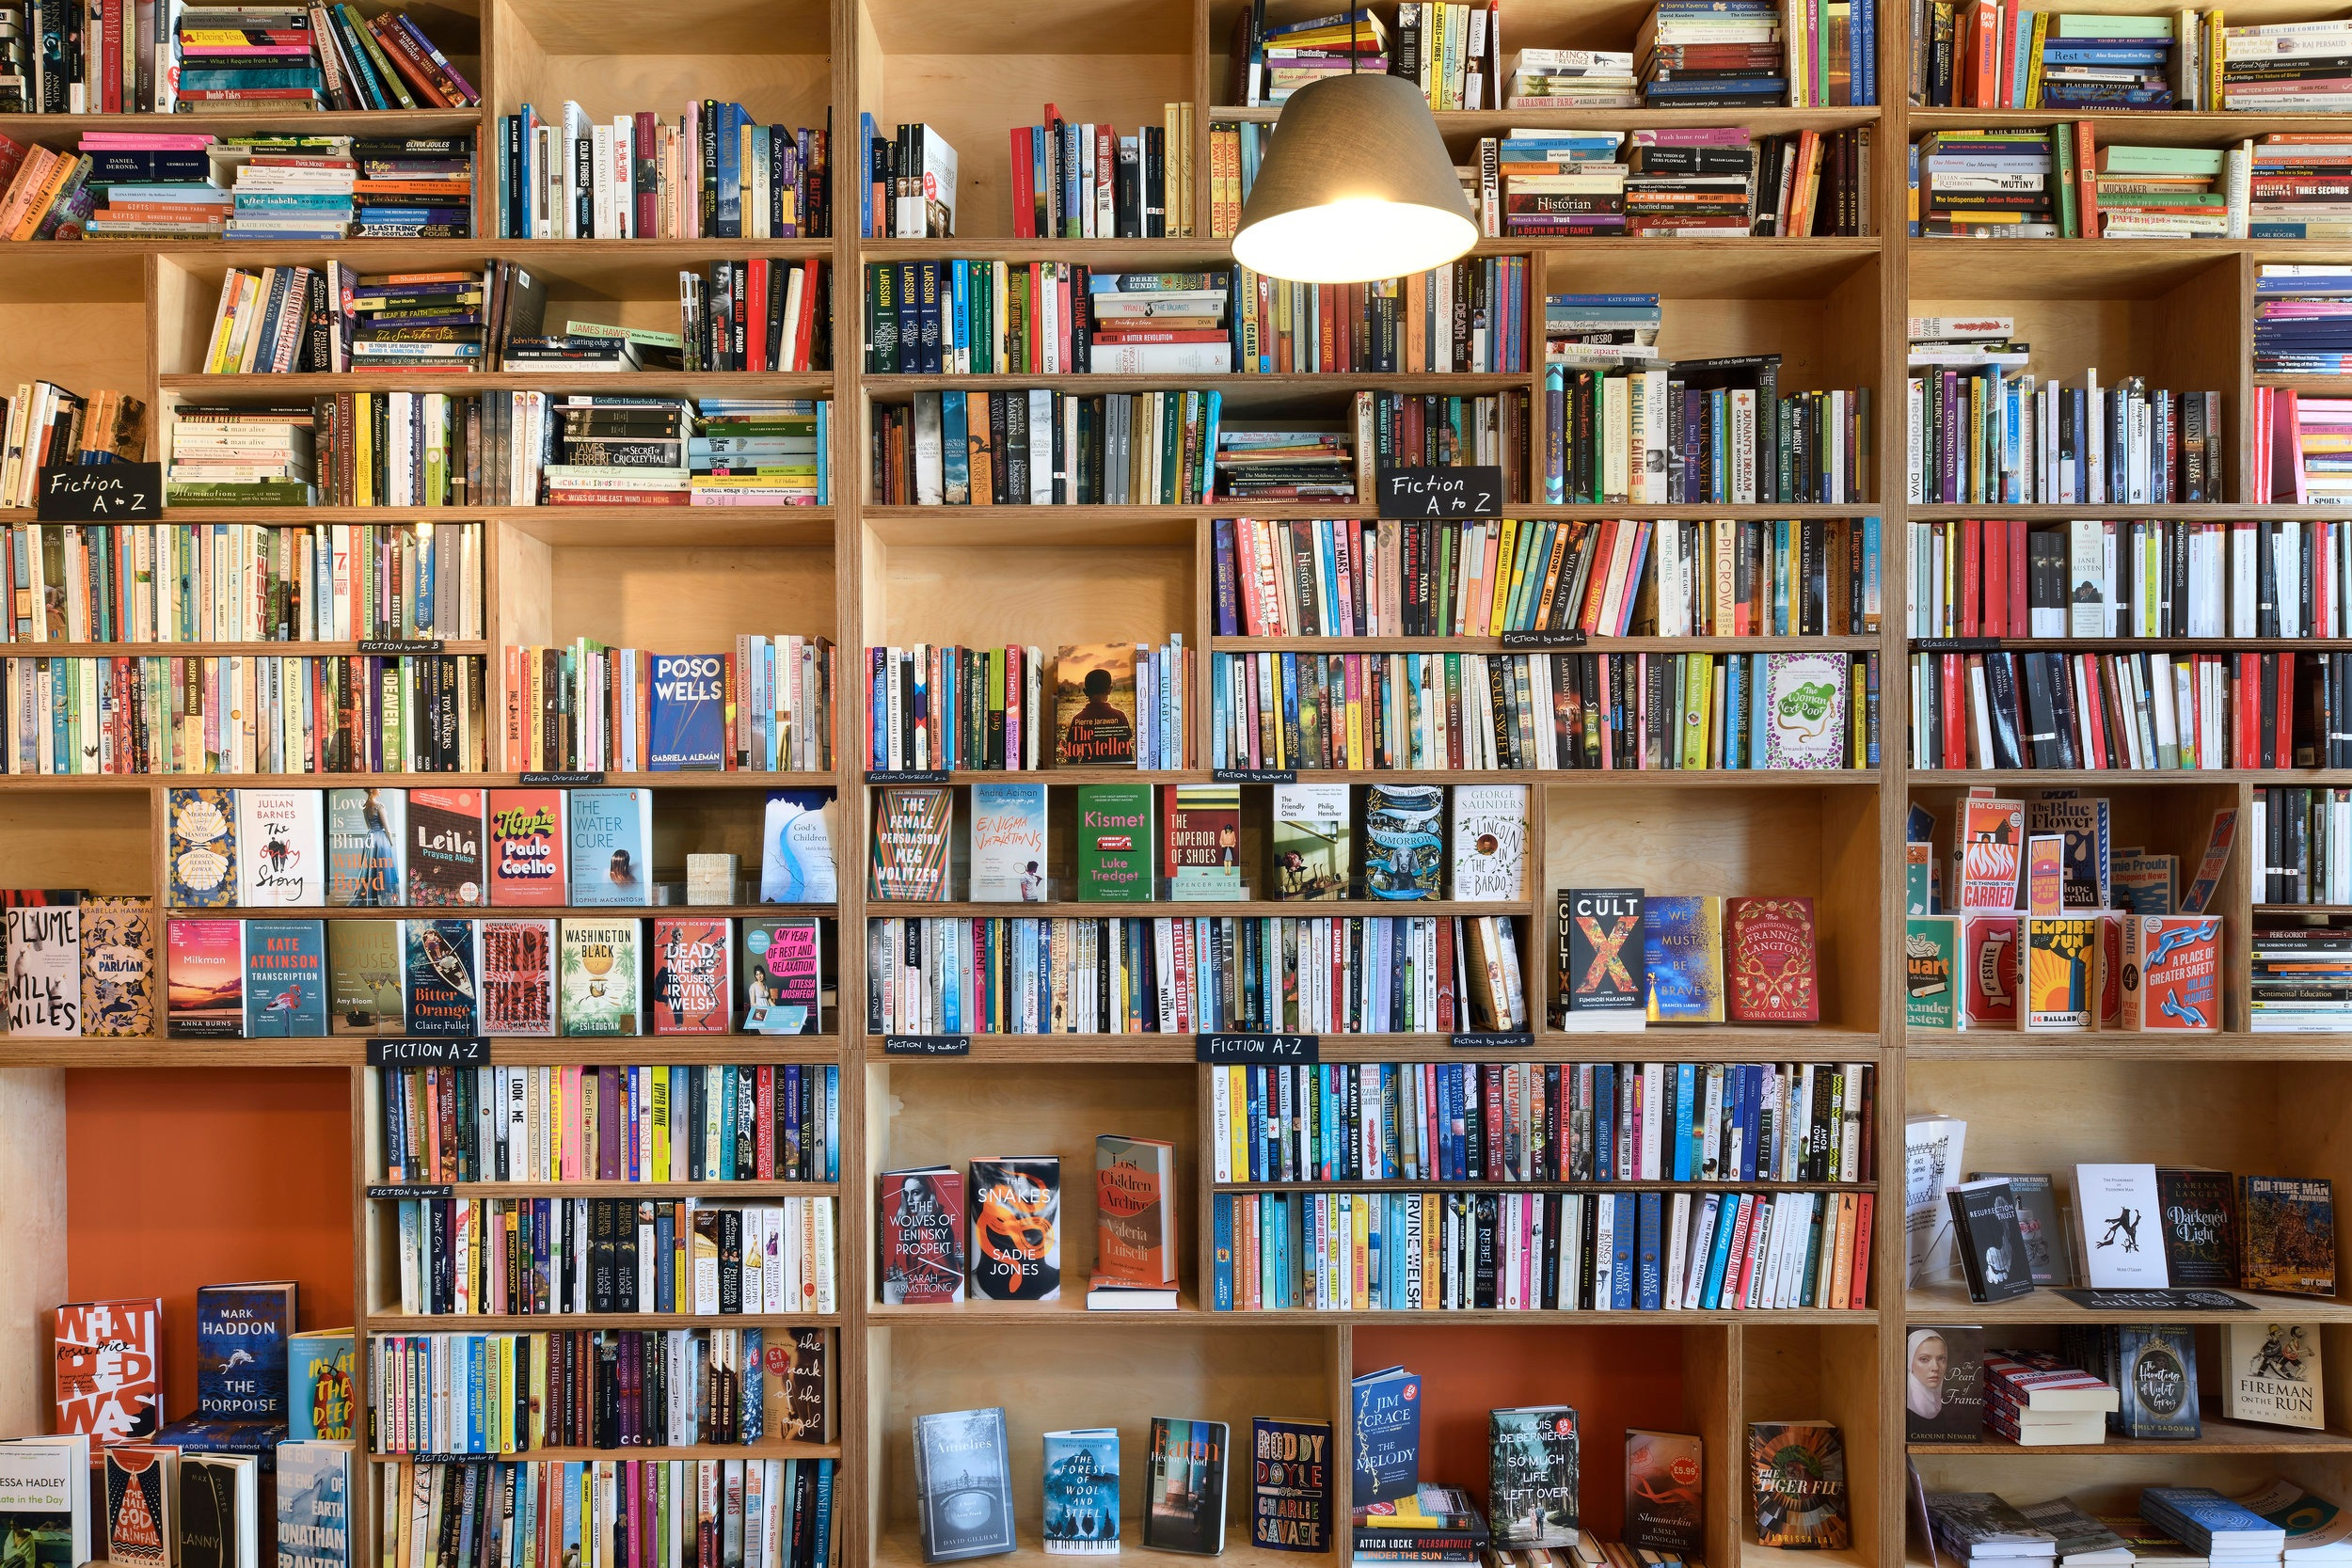 An image of a wall full of shelves l of books